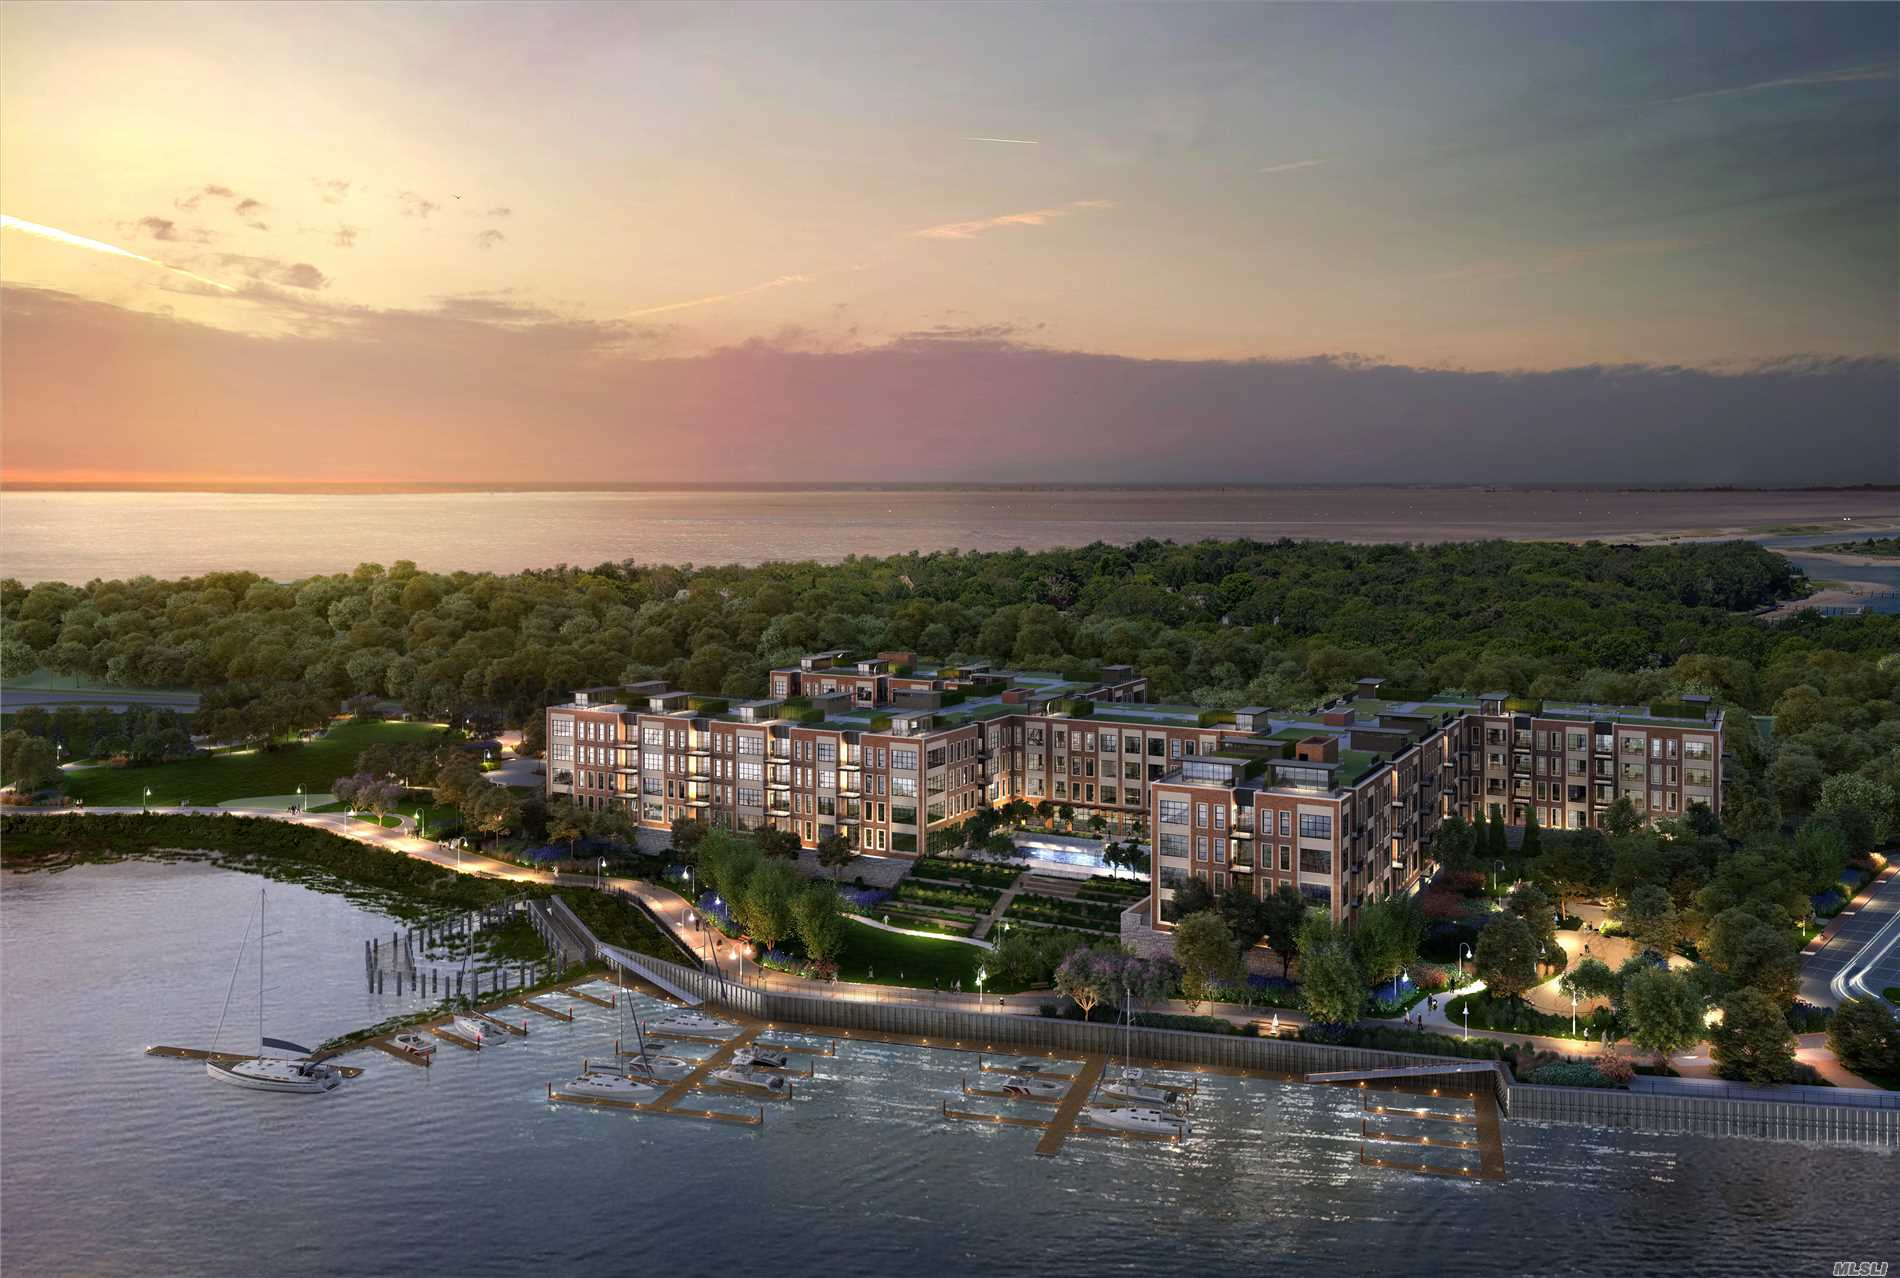 Property for sale at 100 Garvies Point Road # 1217, Glen Cove NY 11542, Glen Cove,  New York 11542